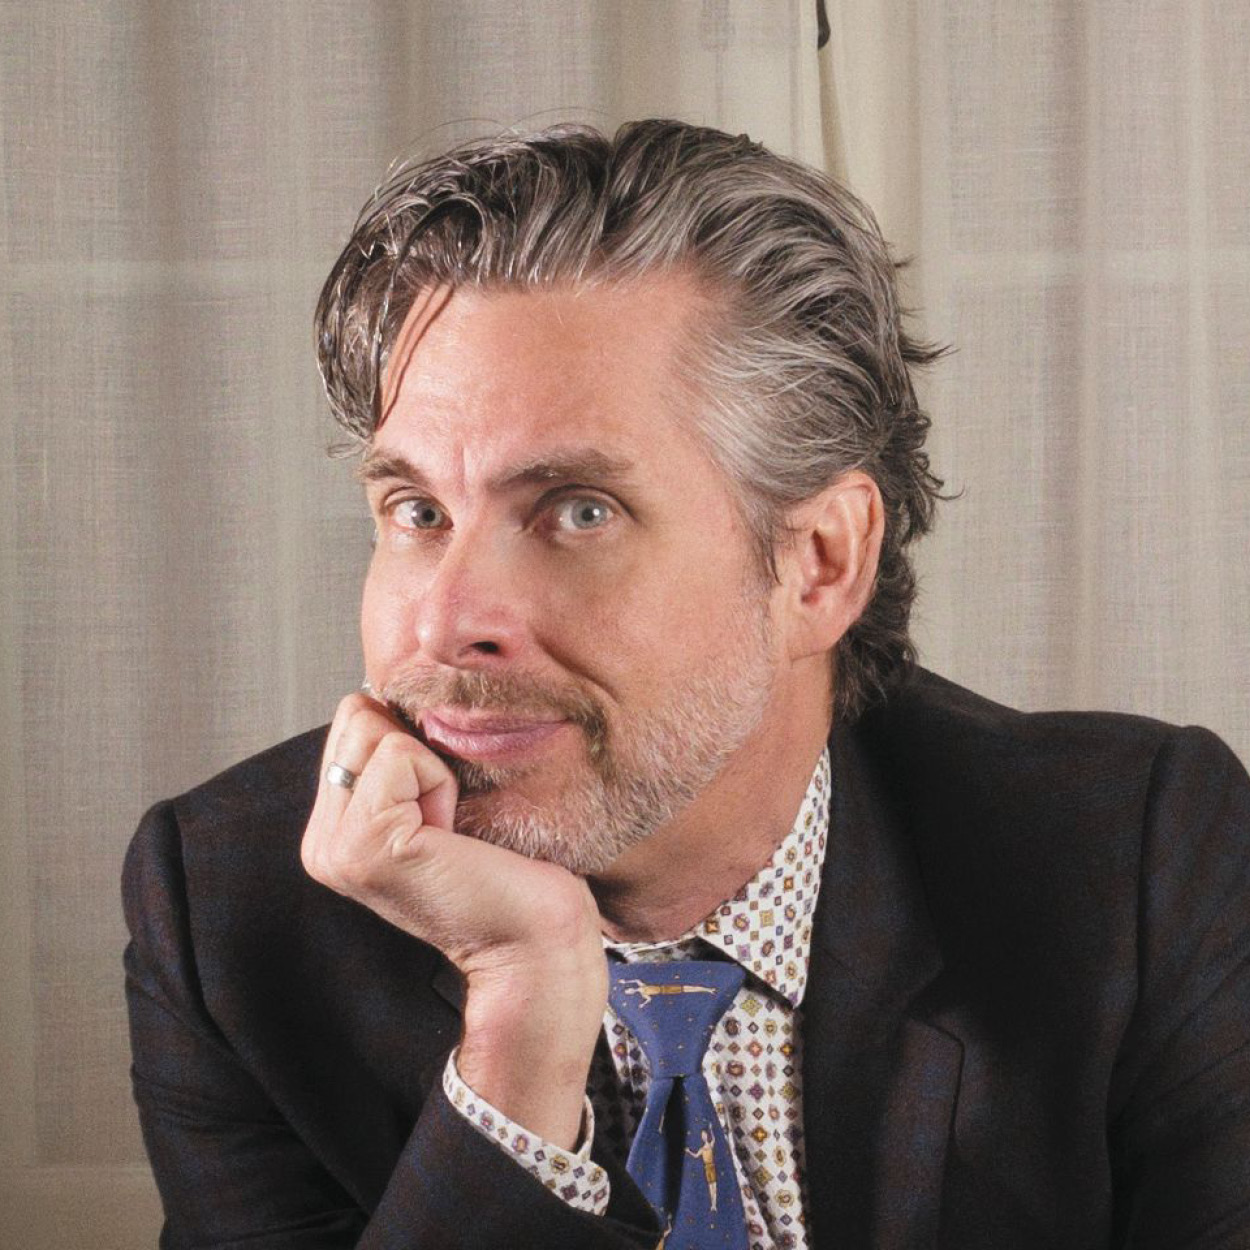 Tickets available now to see Michael Chabon in Brooklyn!